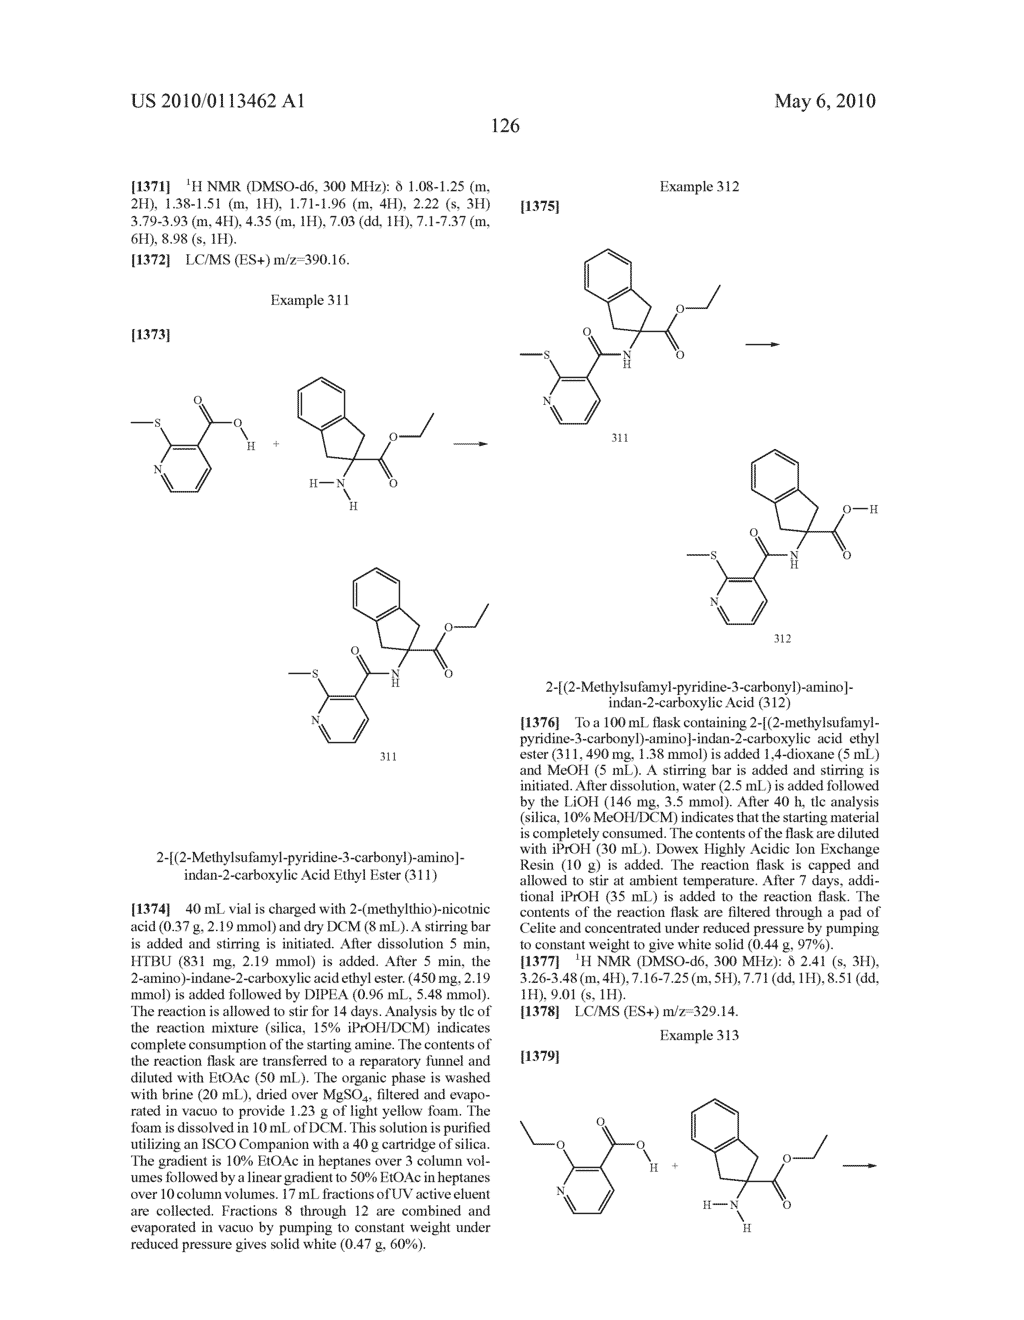 SUBSTITUTED BENZOYLAMINO-INDAN-2-CARBOXYLIC ACIDS AND RELATED COMPOUNDS - diagram, schematic, and image 127